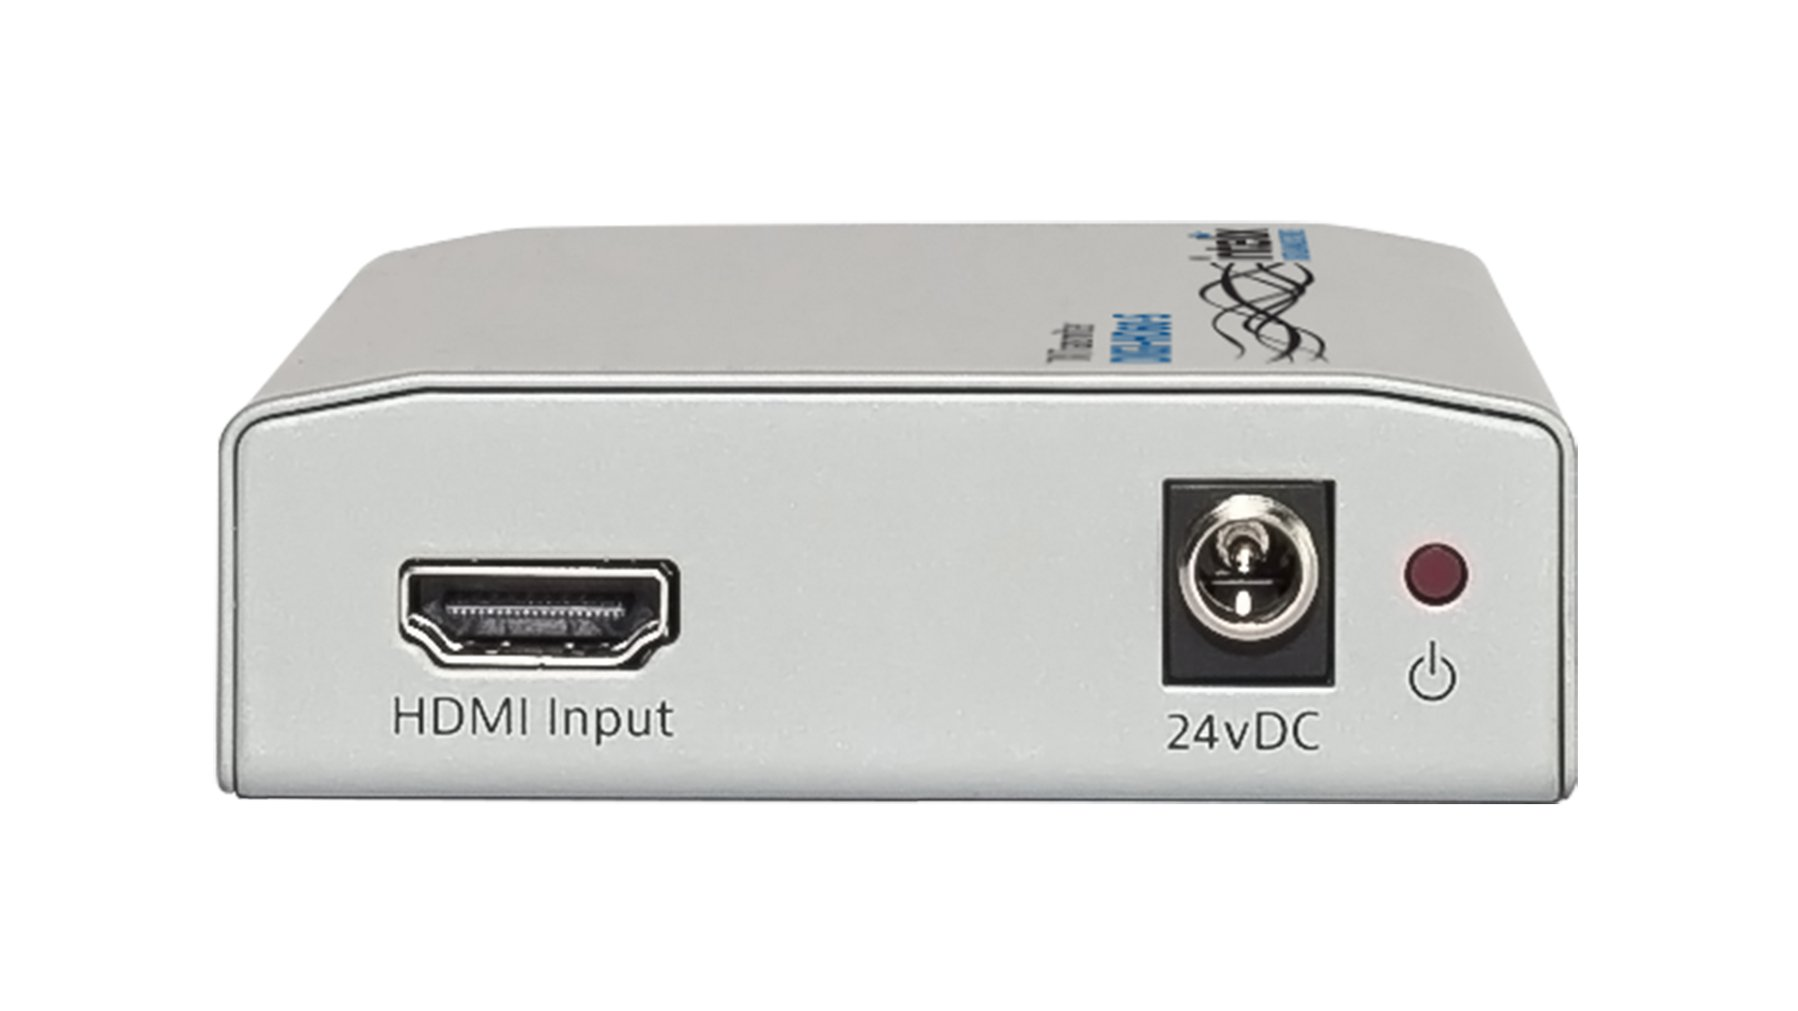 HDBaseT HDMI Over Twisted Pair Transmitter